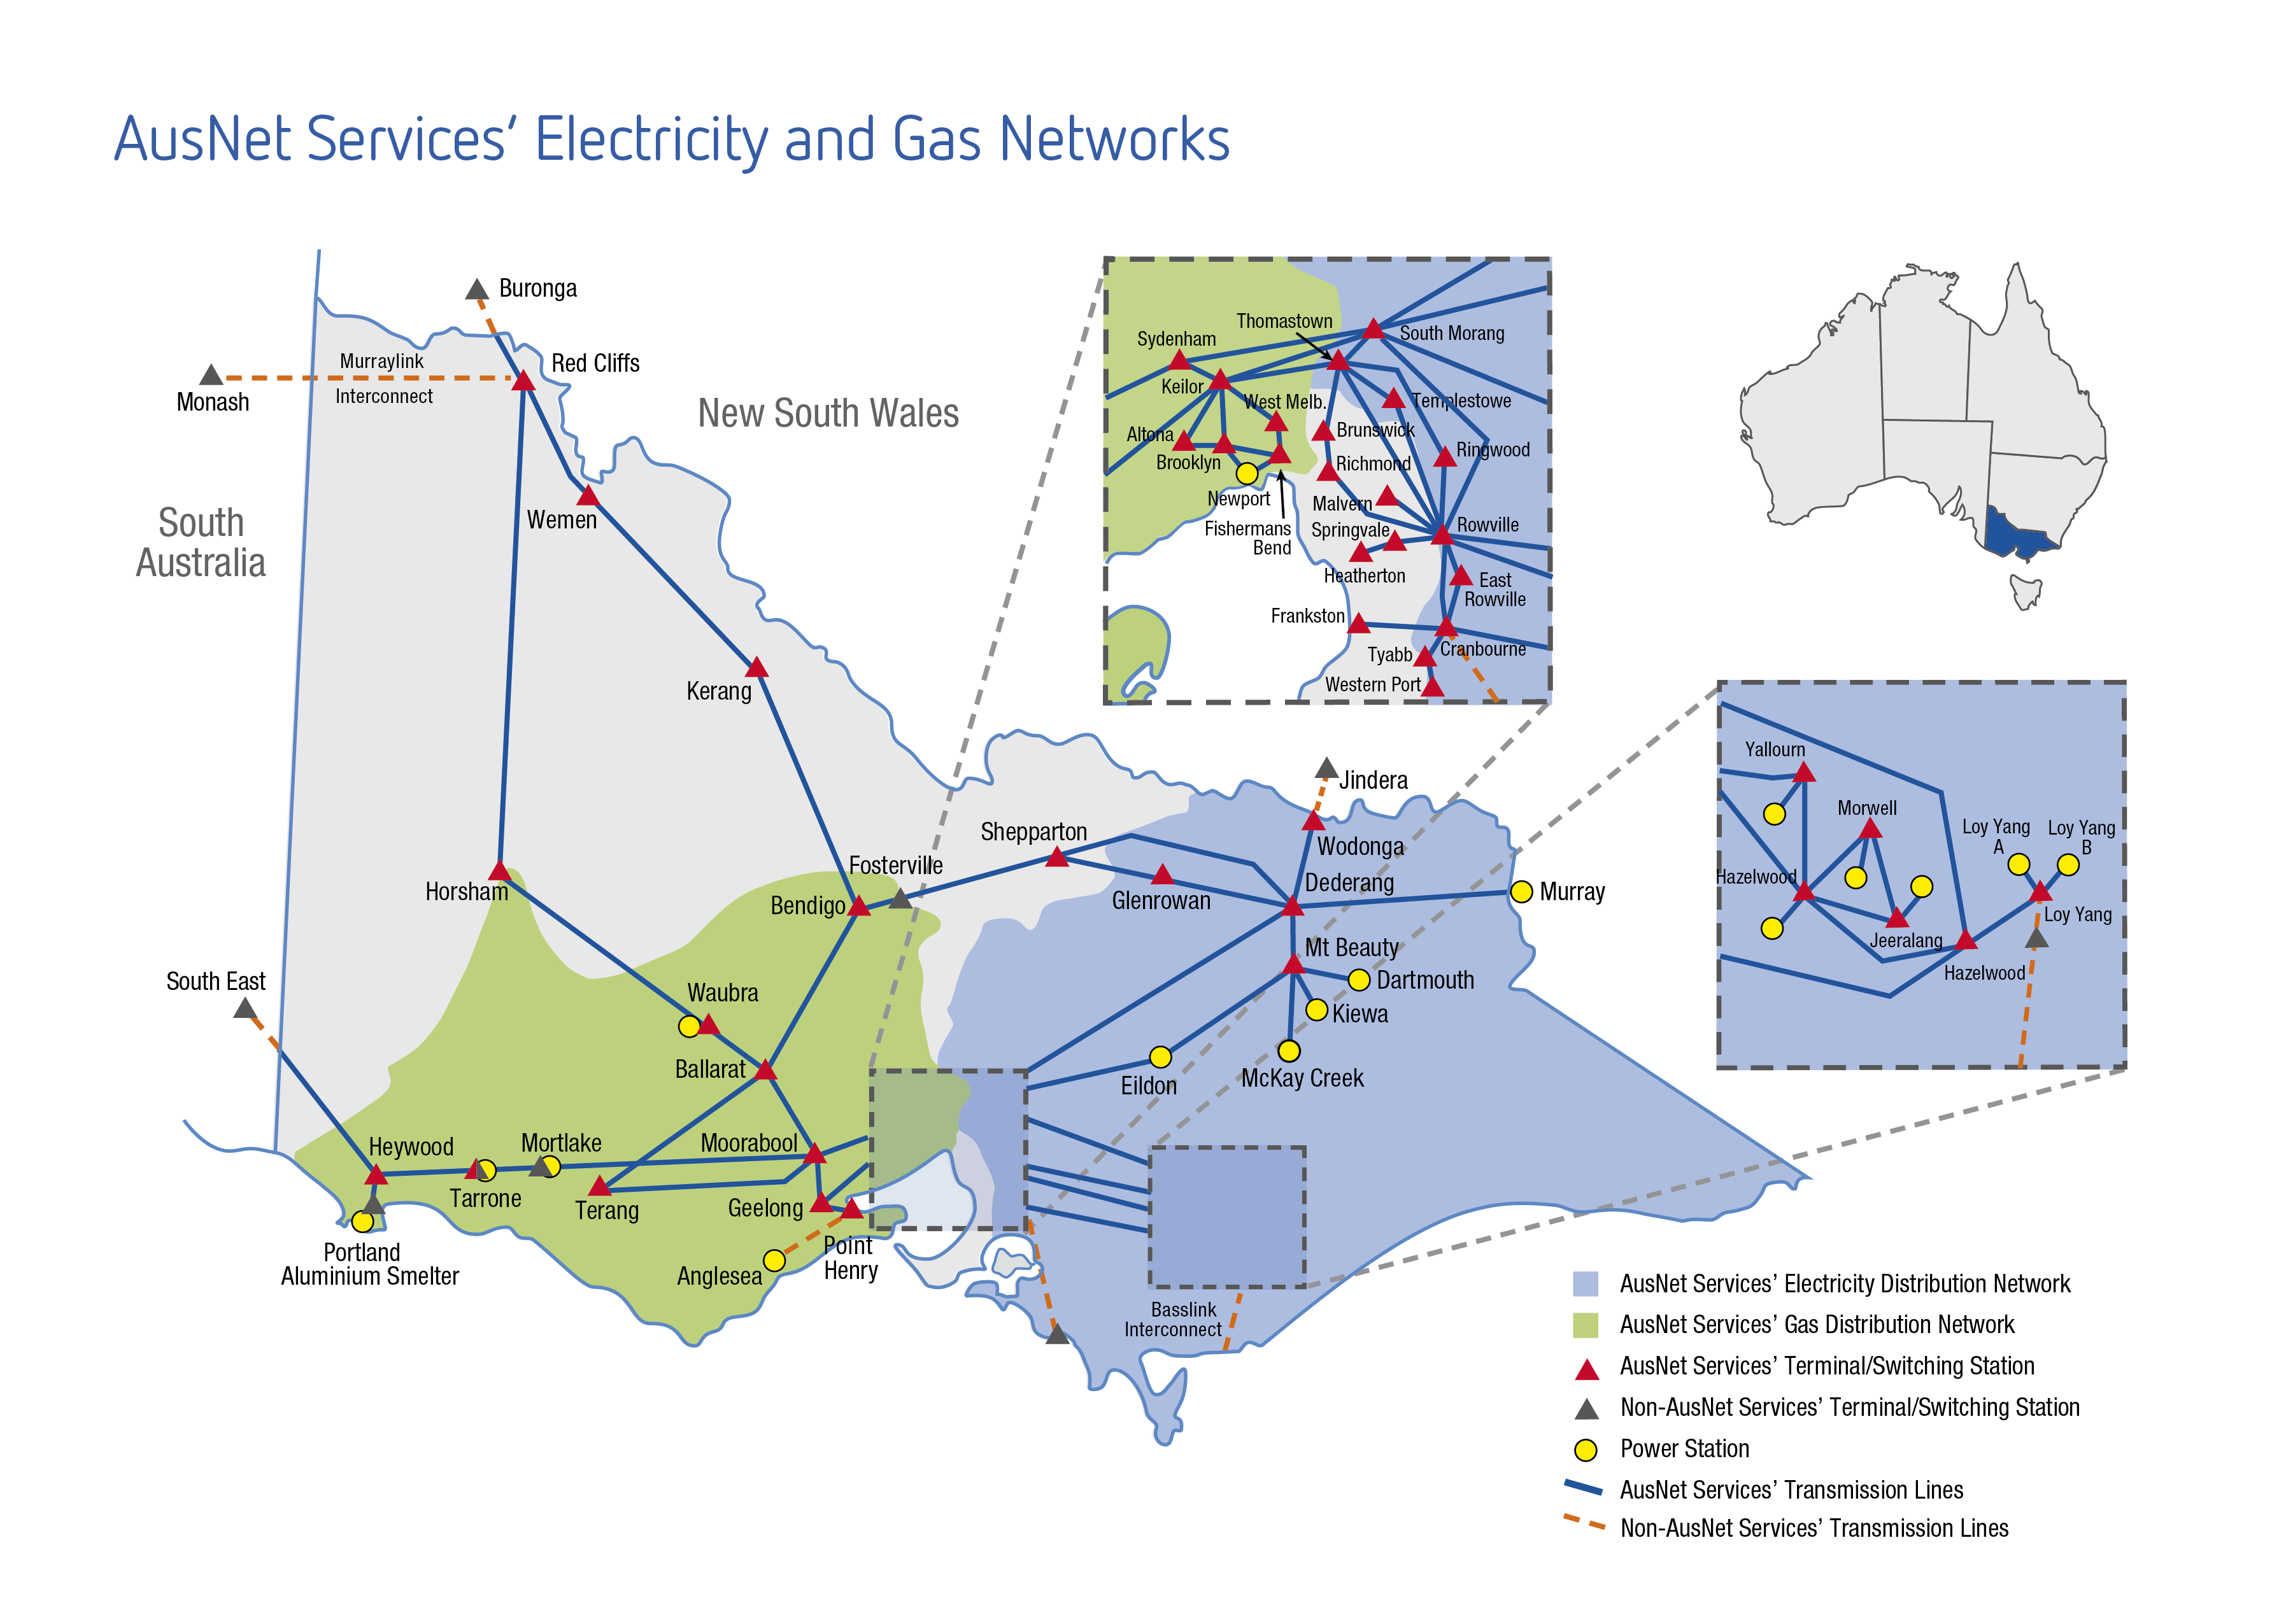 AusNet Services Electricity and Gas network map